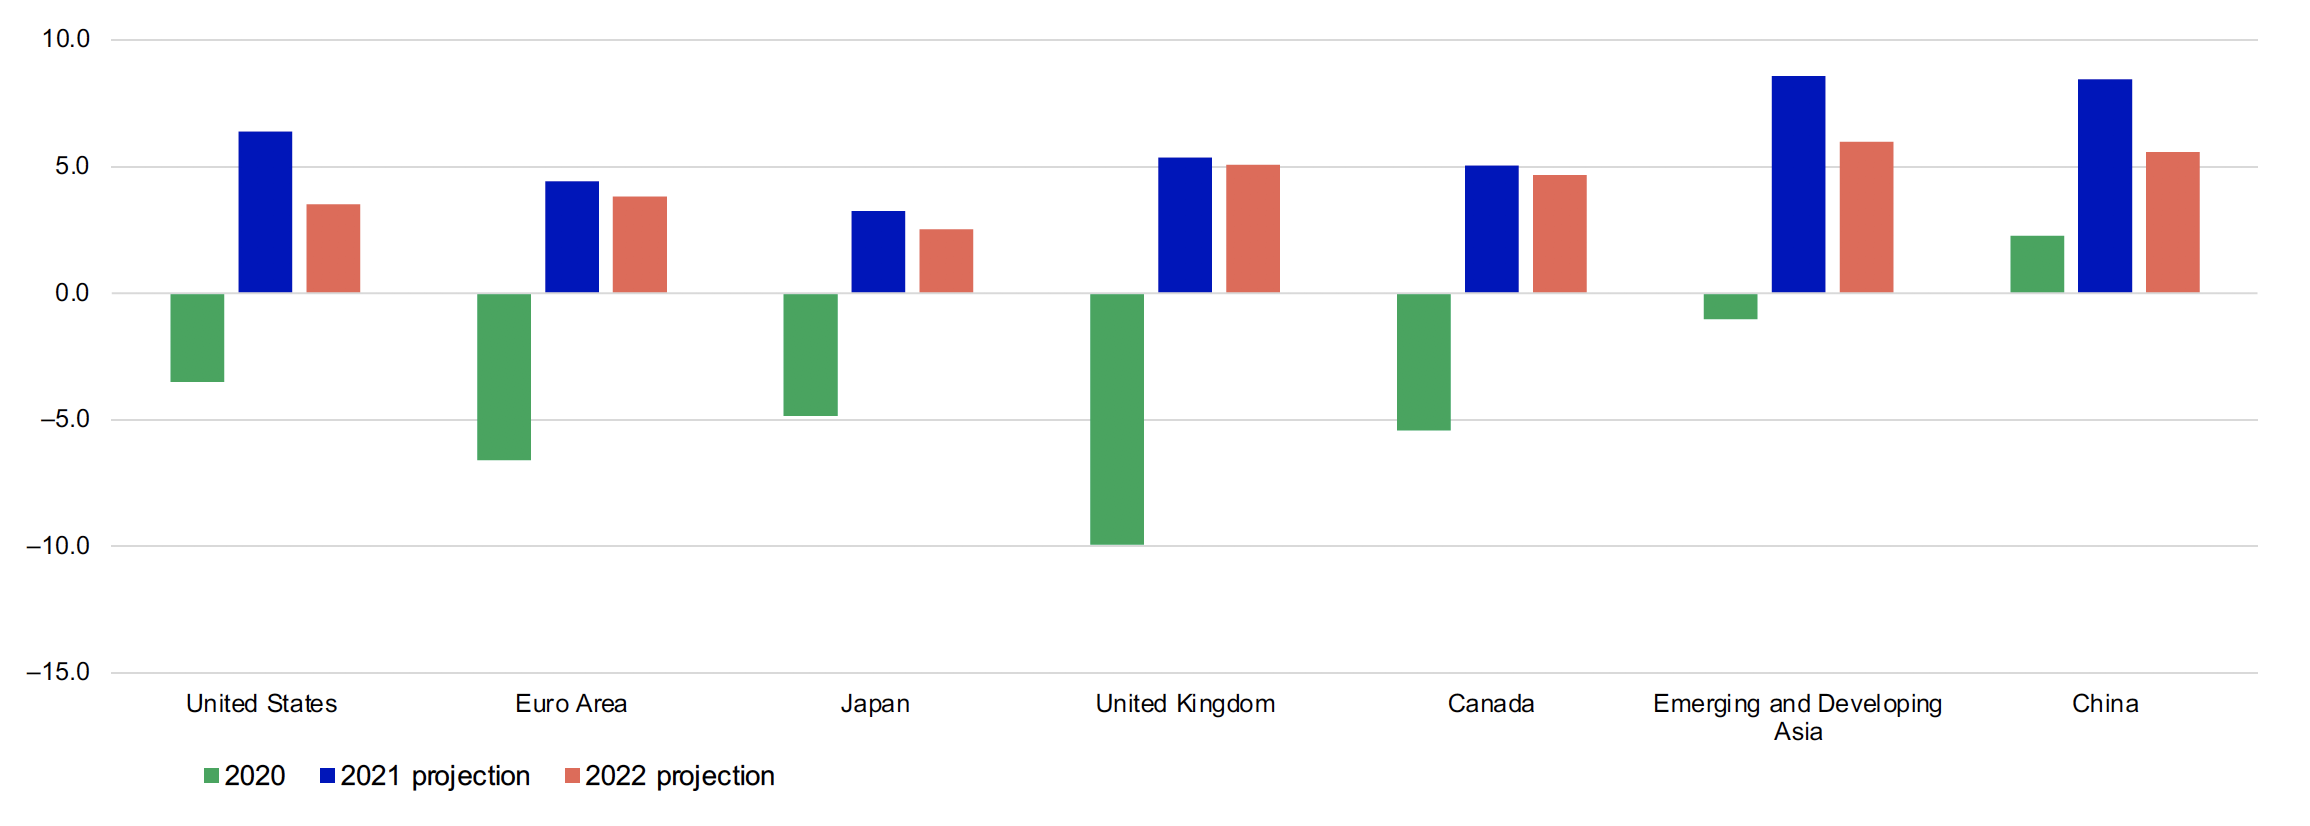 This chart shows Economic growth projections for the United States, European Union area, Japan, United Kingdom, Canada, Emerging and developing Asia and China for 2019 and projections for 2020 and 2021. All categories are positive in 2020 with the highest growth in Emerging and Developing Asia. All growth was negative for 2020 with the execption of China, and with the United Kingdom and European Union area being the lowest. All projections are positive for 2021 and 2022 with Emerging and Developing Asia and China being the highest.